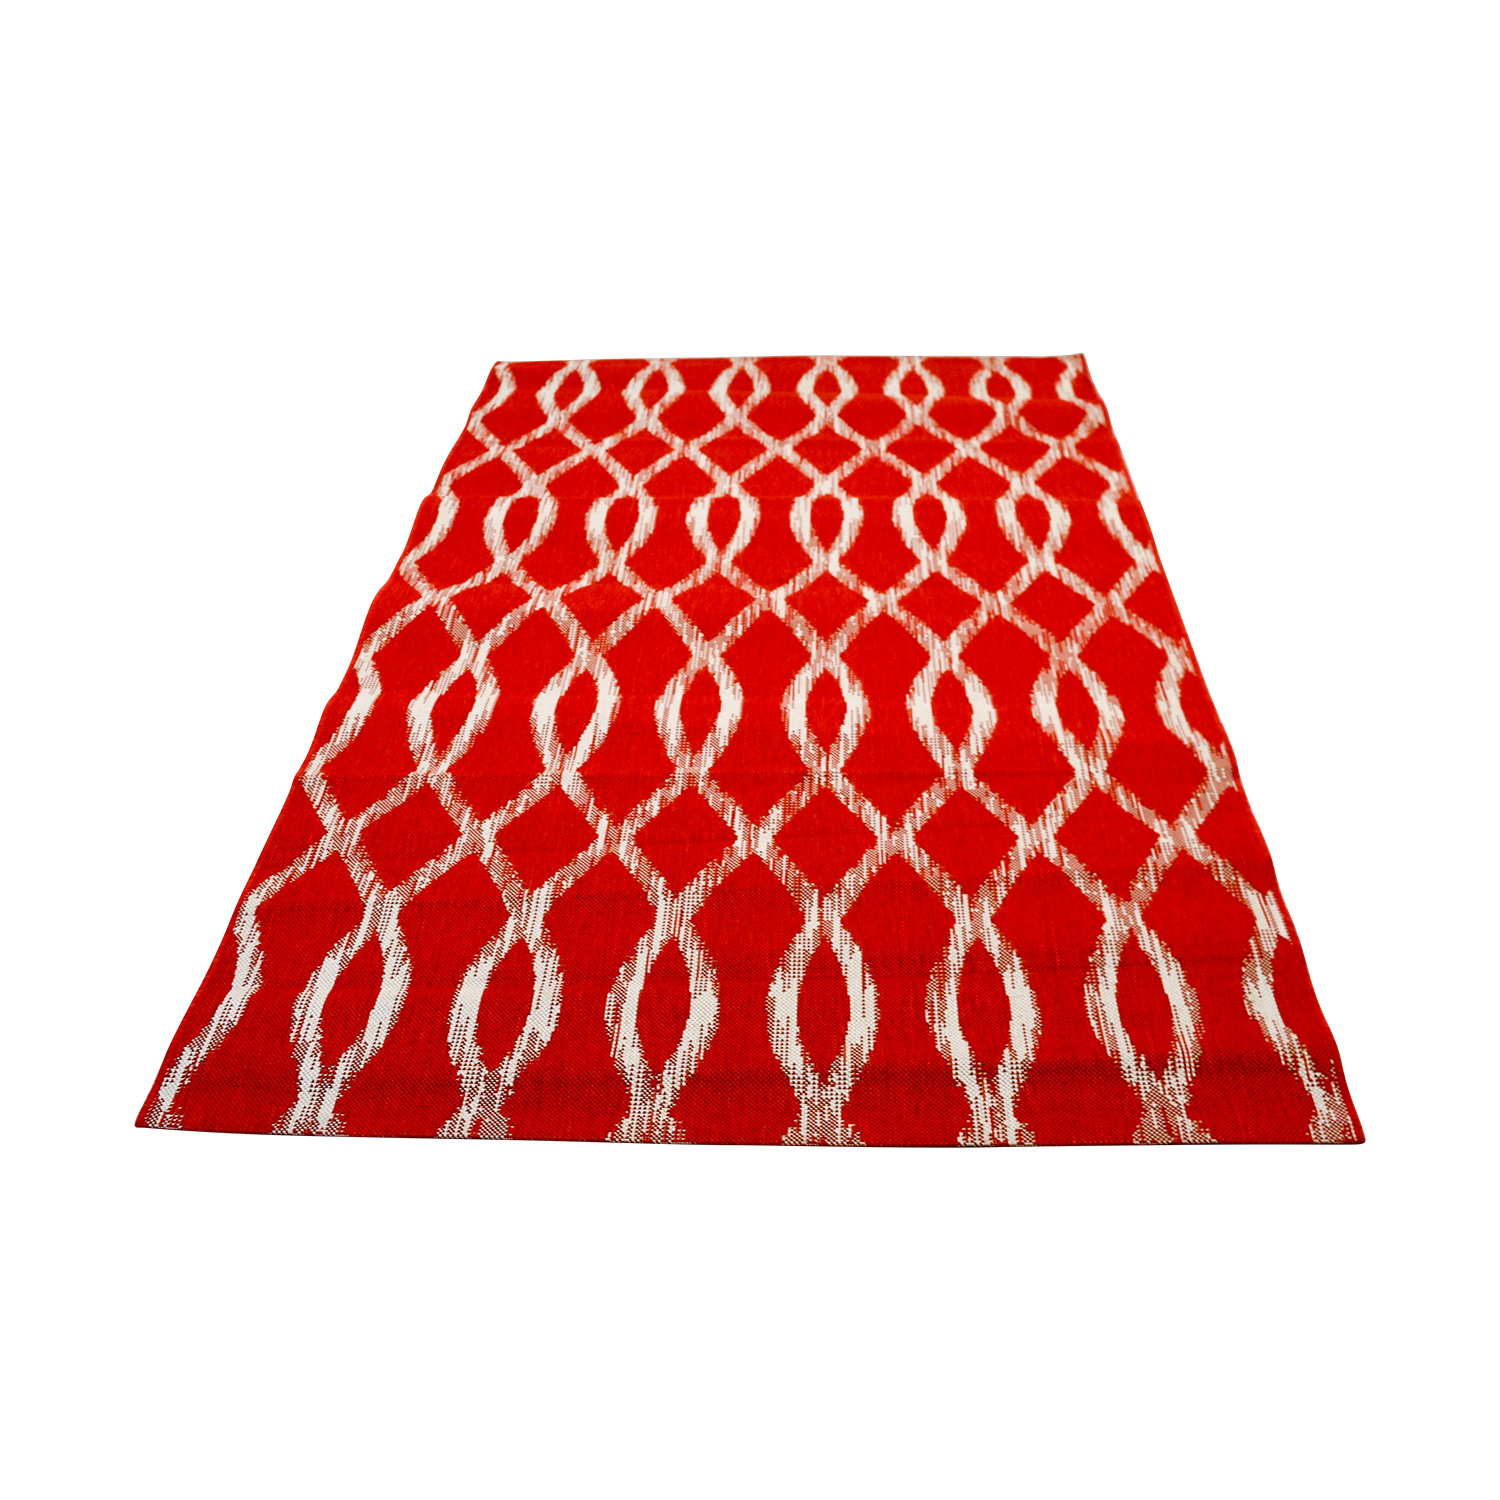 Crate & Barrel Crate & Barrel Indoor and Outdoor Red and White Rug Rugs